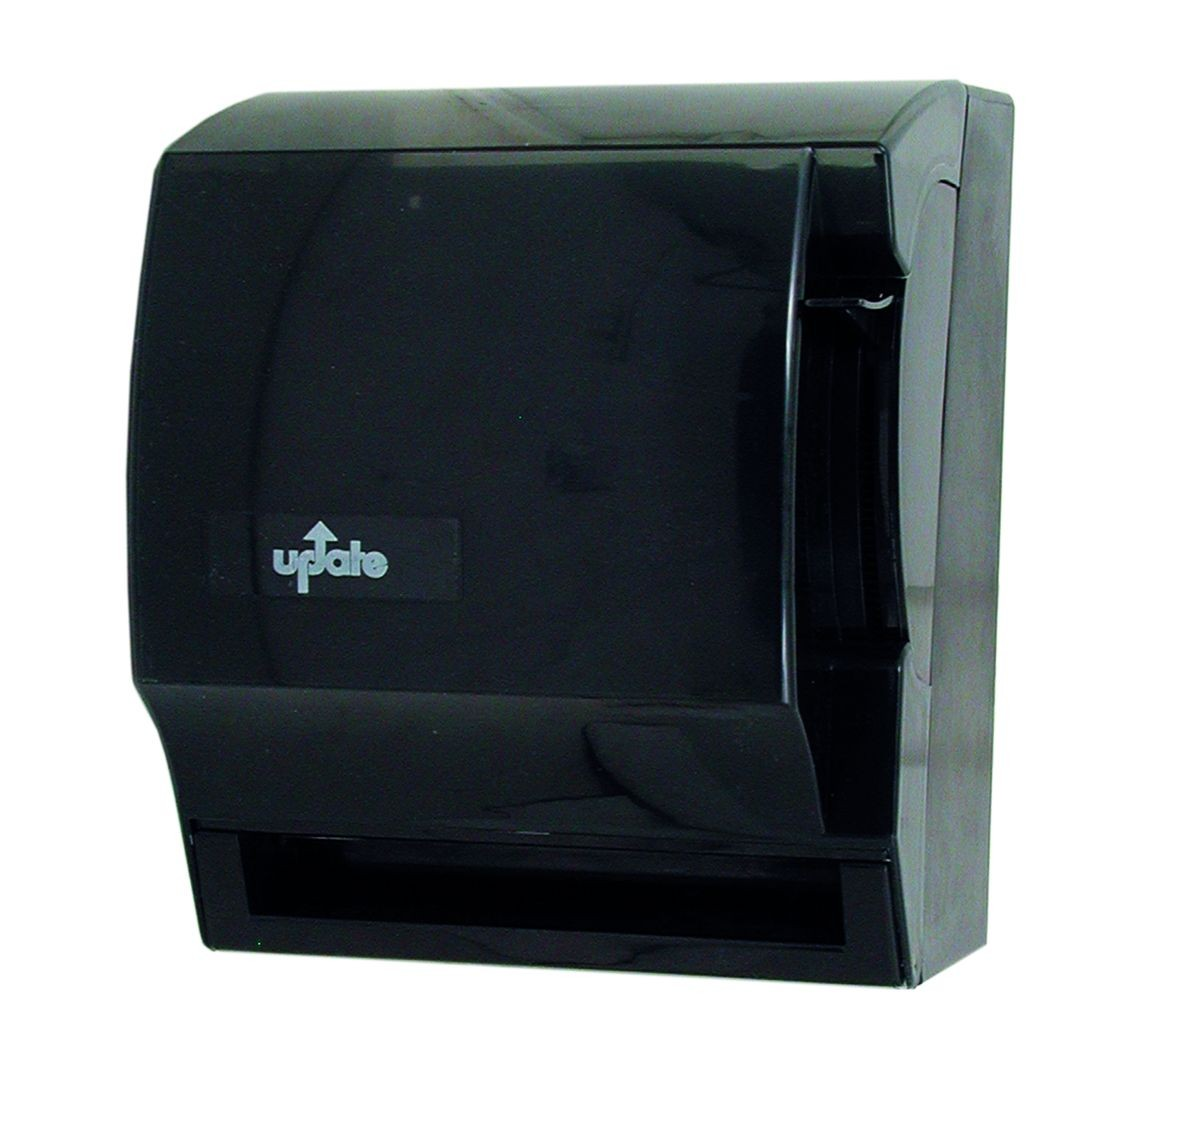 Update International TD-1114L Plastic Square Towel Dispenser